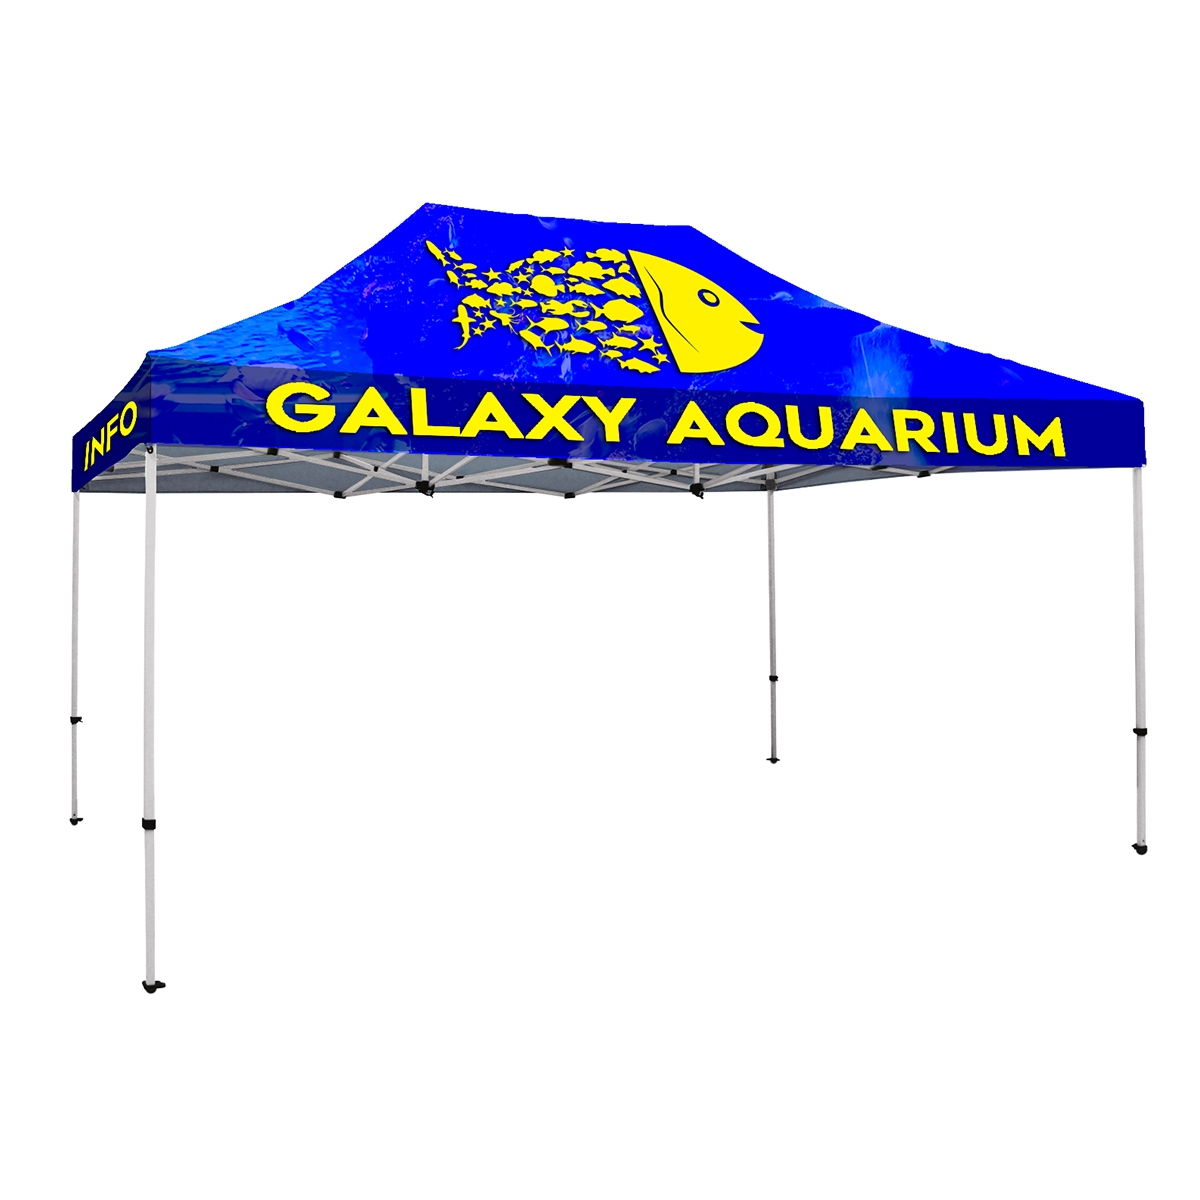 15' x 10' Tent Full-Color Canopy with 40mm Hexagonal  Aluminum Frame and Wheeled Carry Bag